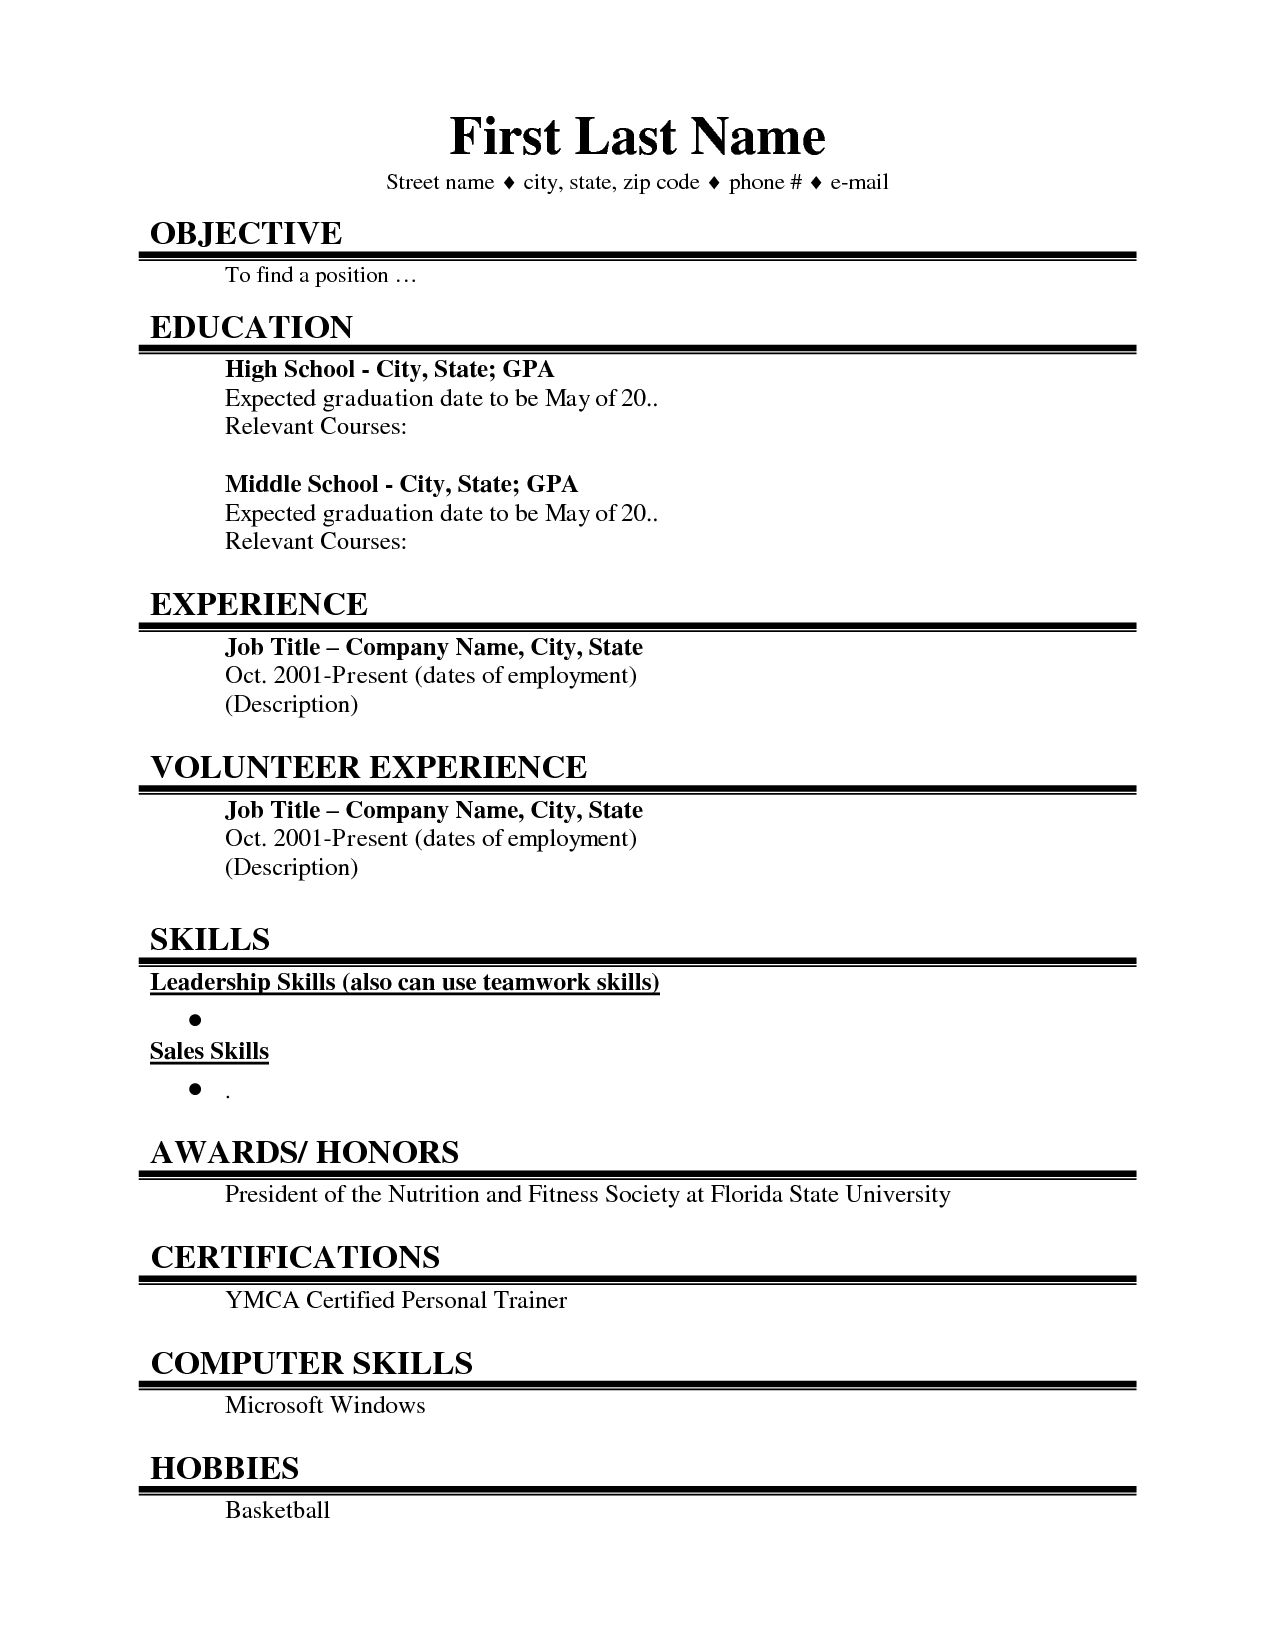 Search Resumes For Free | First Job Resume Google Search Resume Resume Student Resume